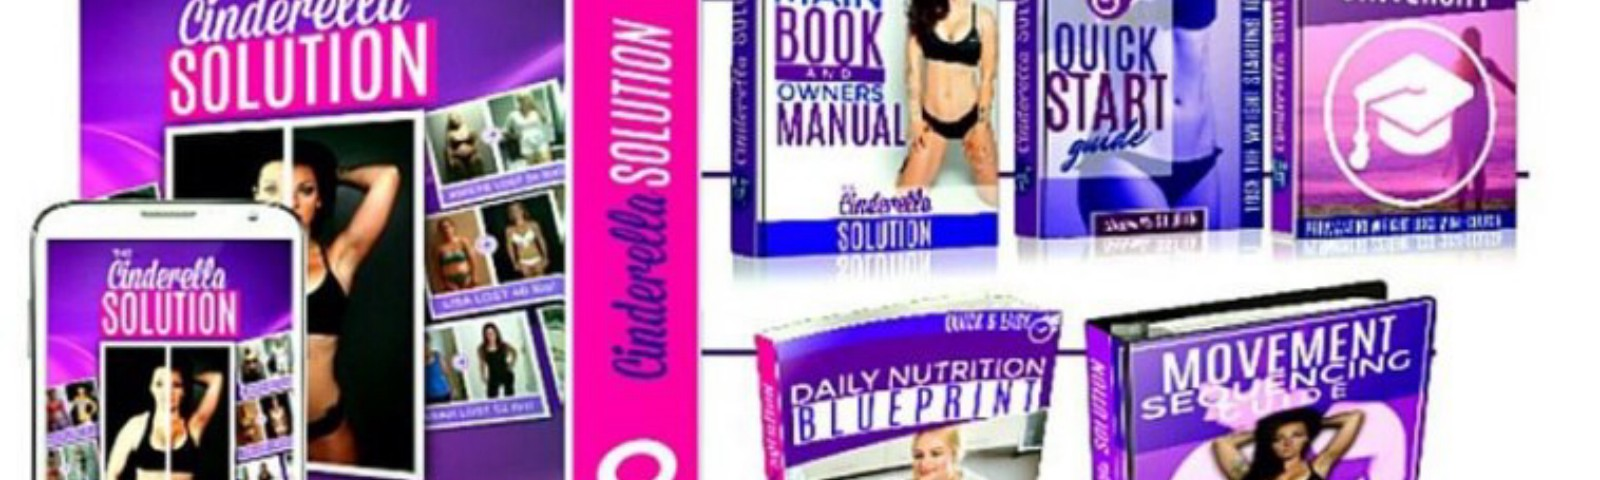 Amazon Cinderella Solution  Diet Coupon March 2020